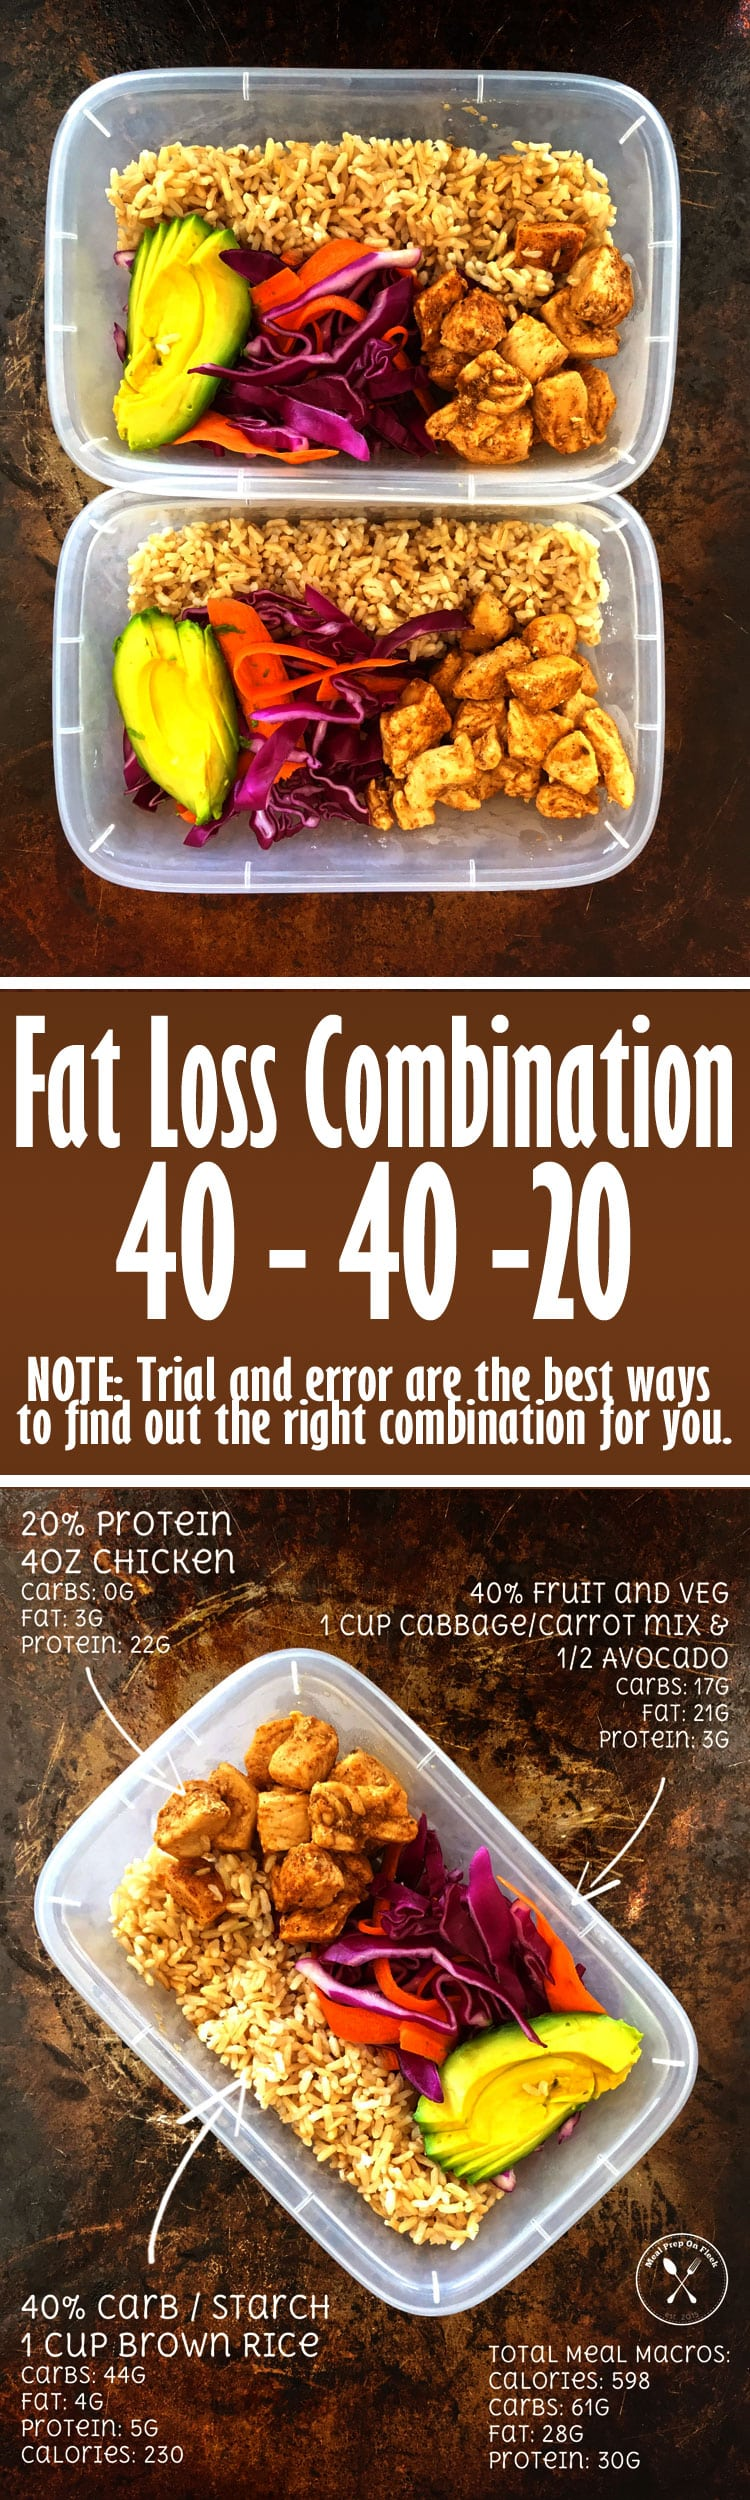 Lose weight healthy food image 10